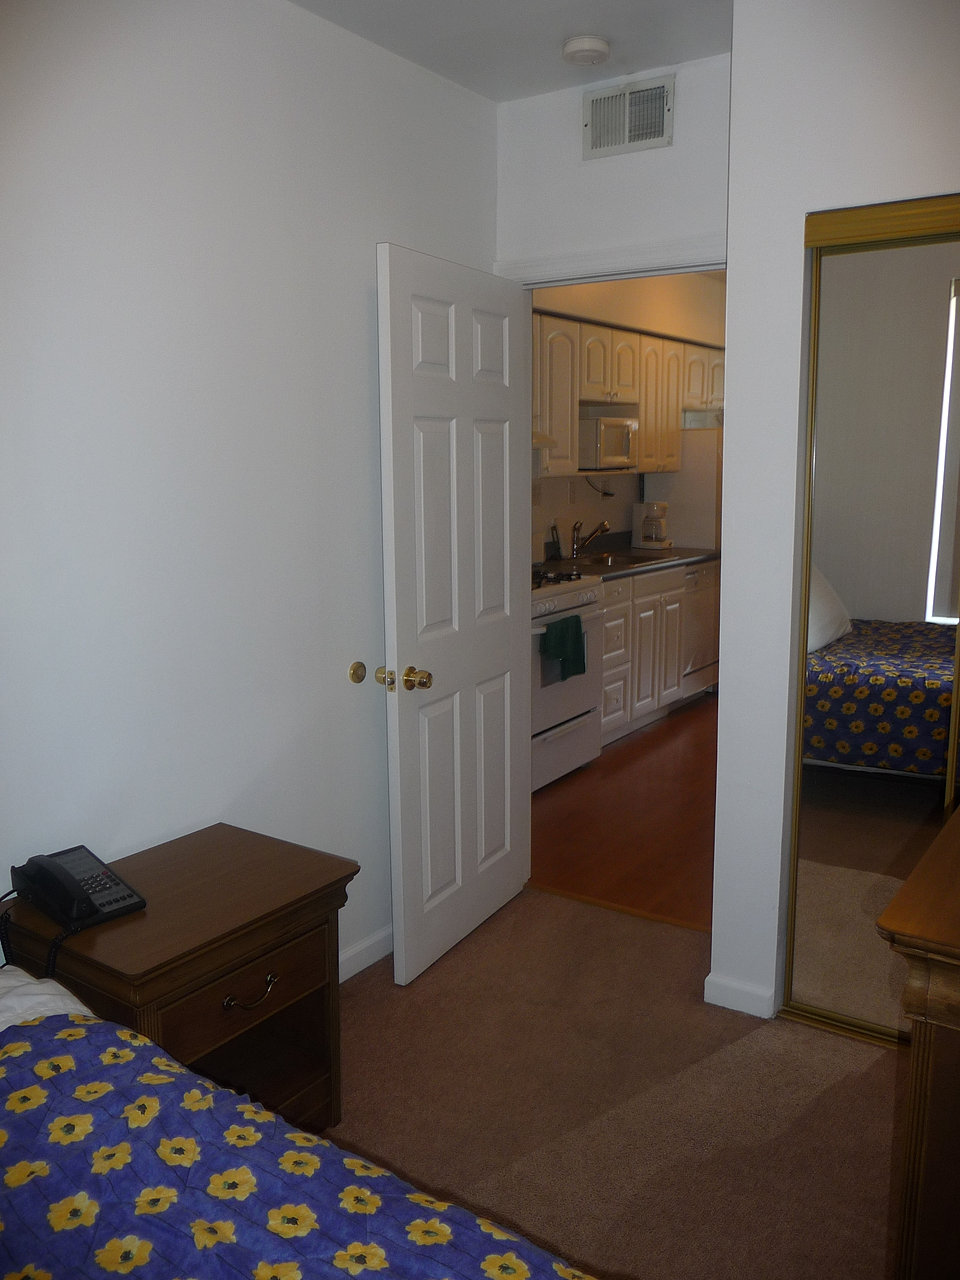 Available Apartments In Pittsburgh Oakland Shadyside And More Photos Of 3401 Forbes